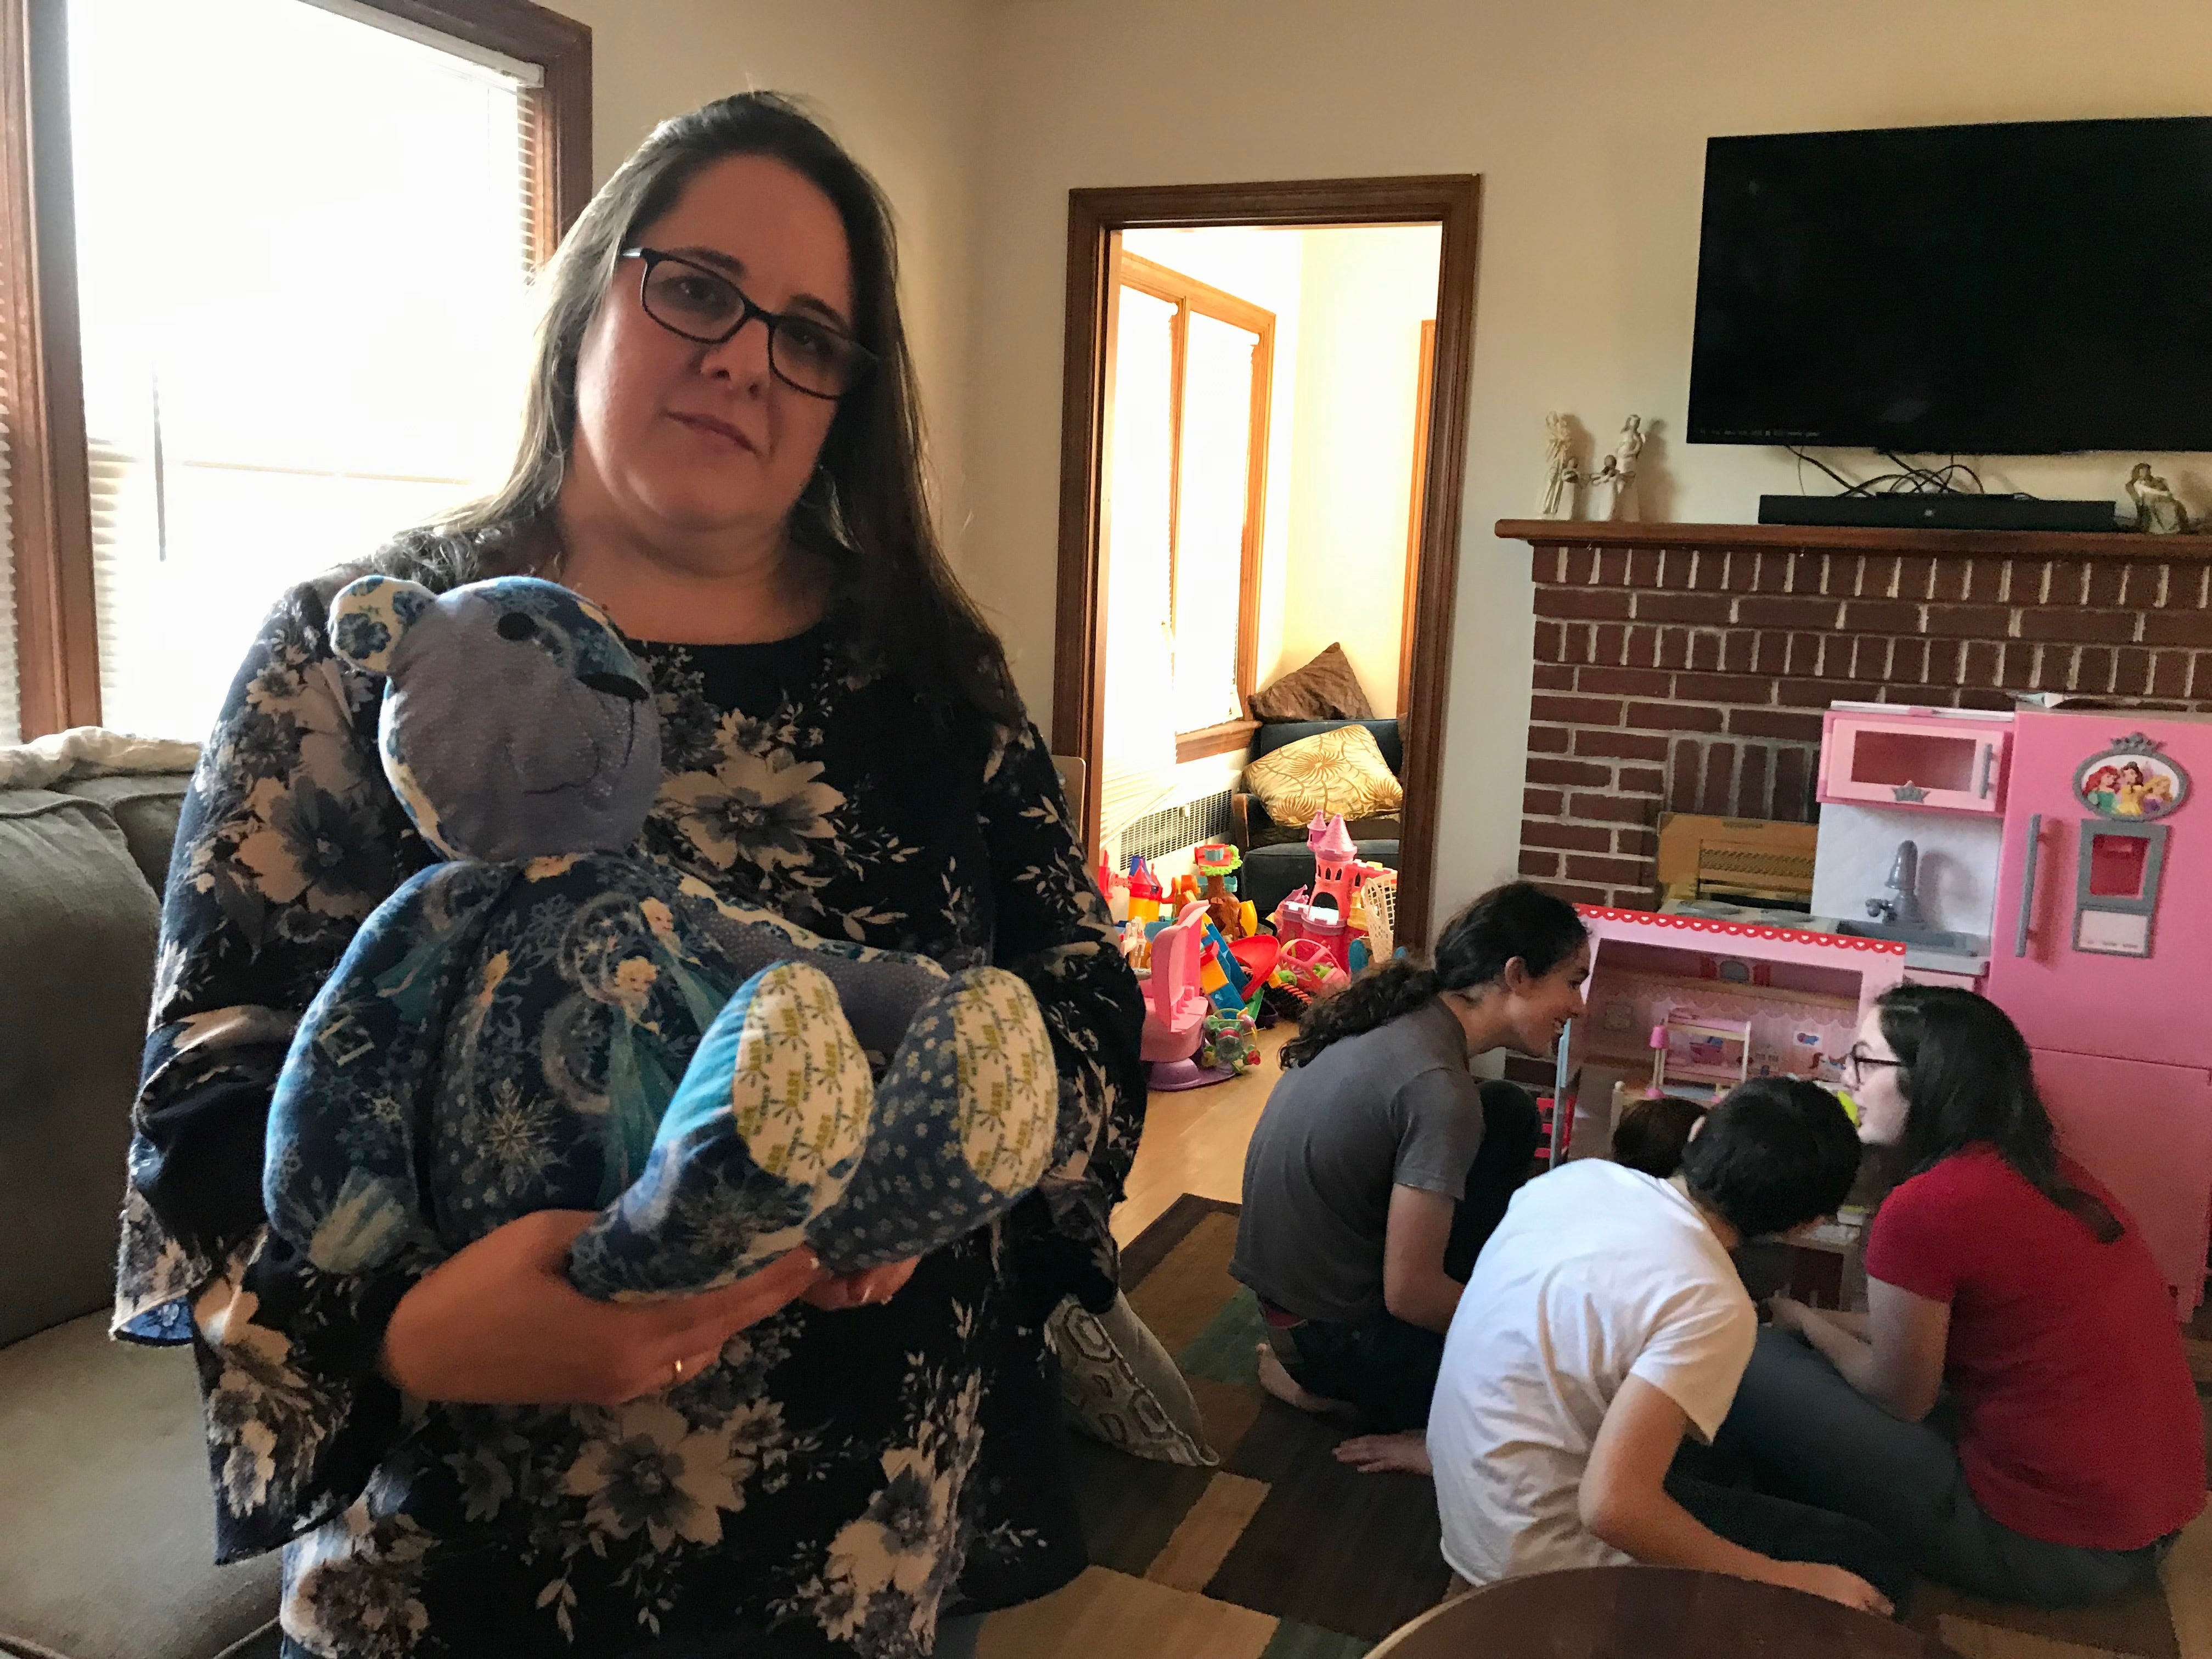 Amy Bussey holds her daughter Rebecca's Rare Bear while her kids Carter, Wyatt and Julia gather round Rebecca as she plays with her dollhouse in their home in Ladd, Virginia, on Friday, March 15, 2019.